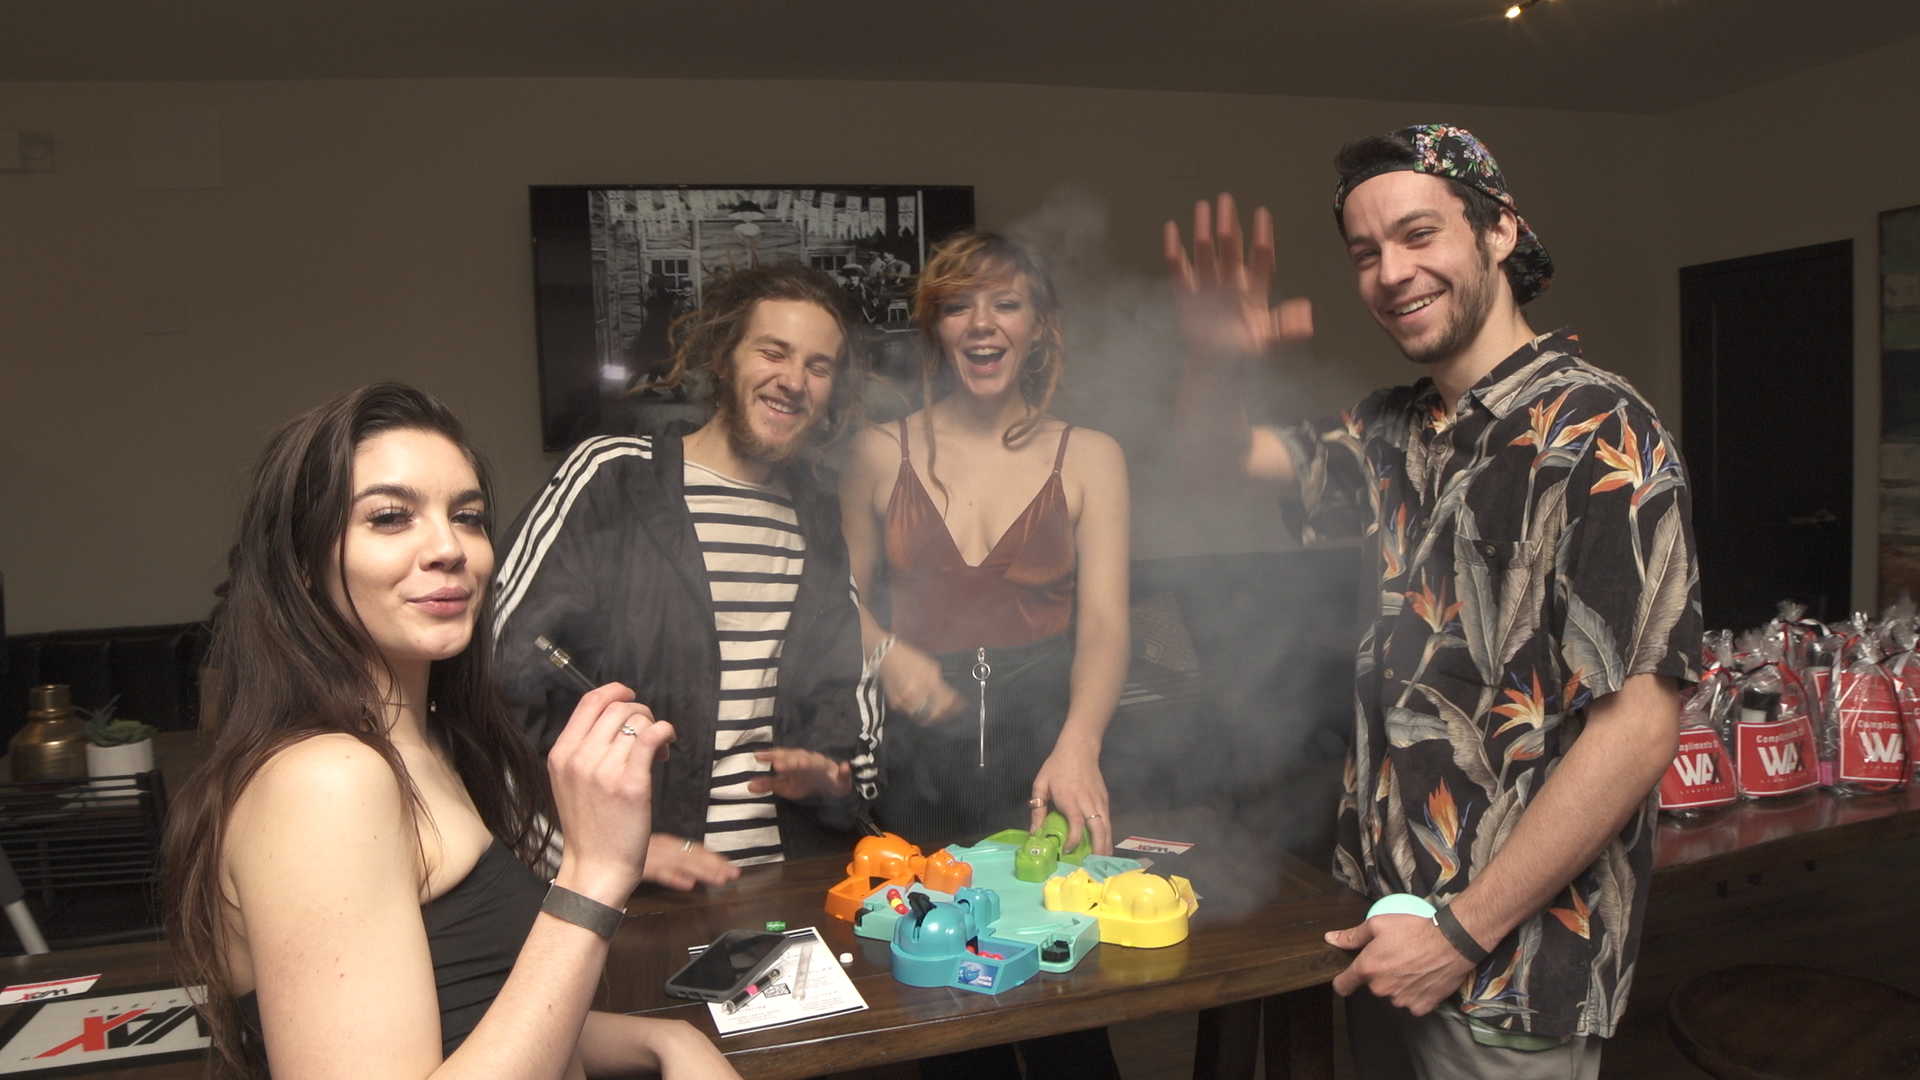 THC Vape Juice Creates a Buzz at First Legal Cannabis Vape Lounge